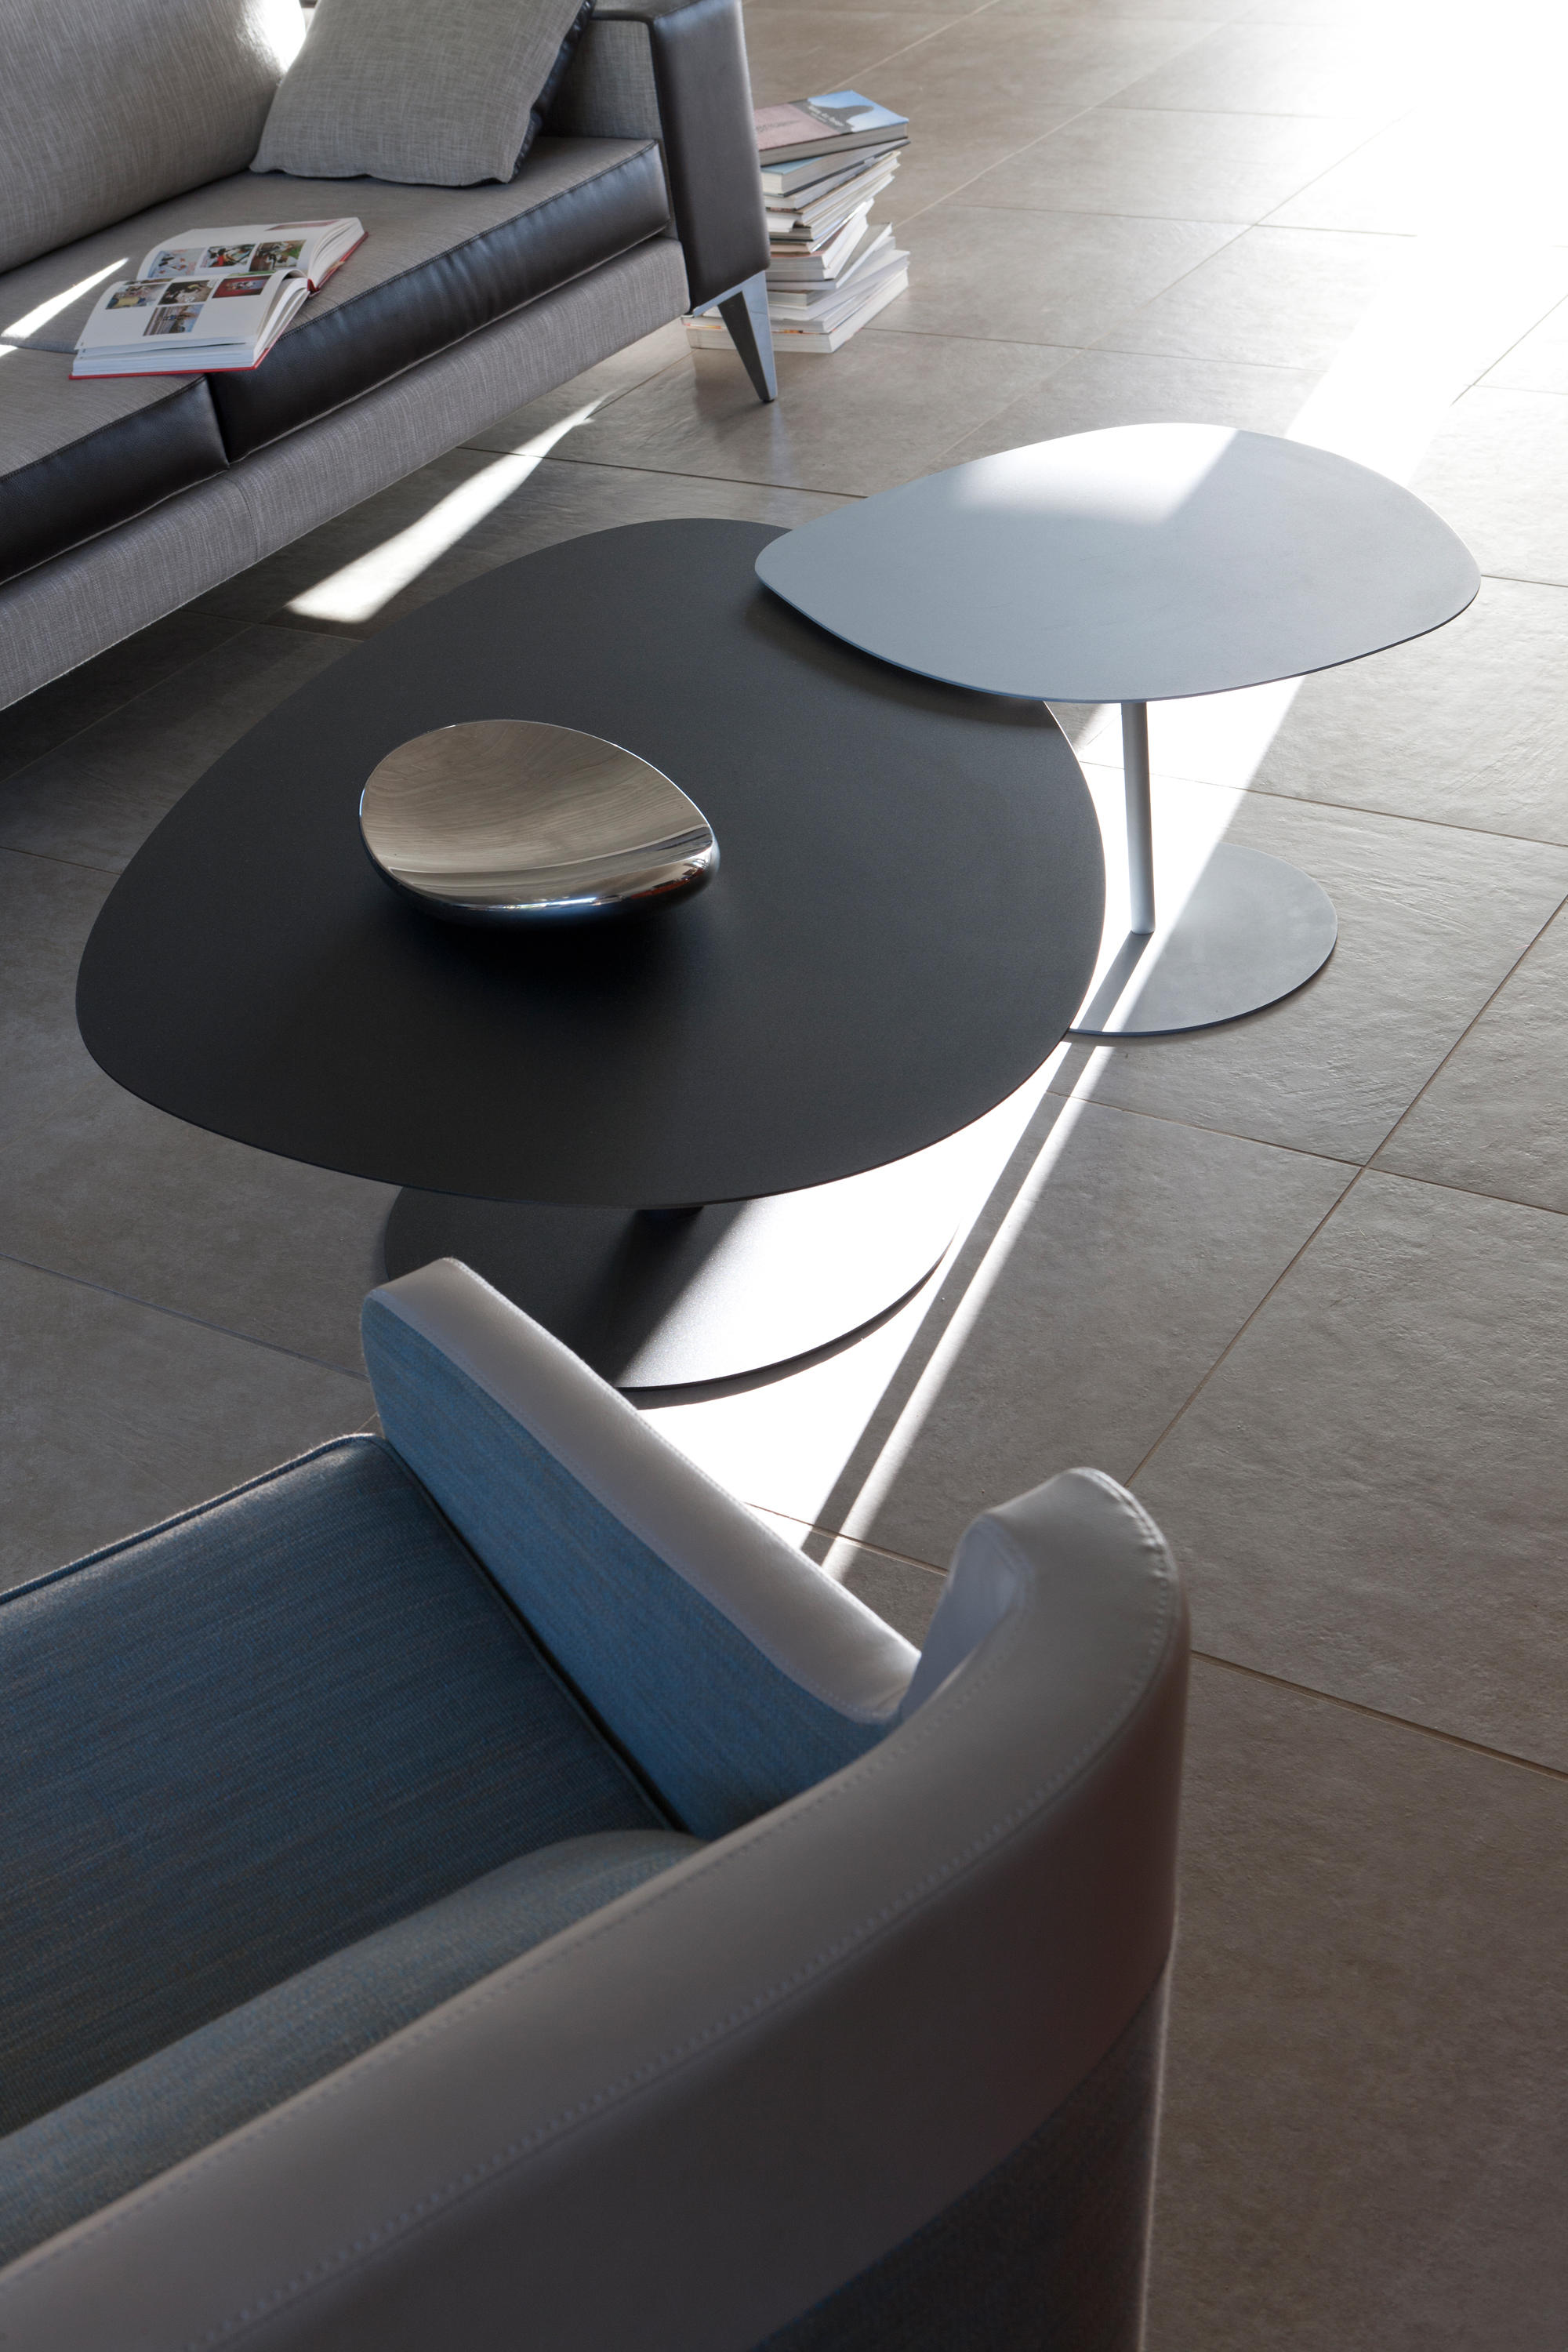 Galet table 1 coffee tables from mati re grise architonic for Table exterieur grise